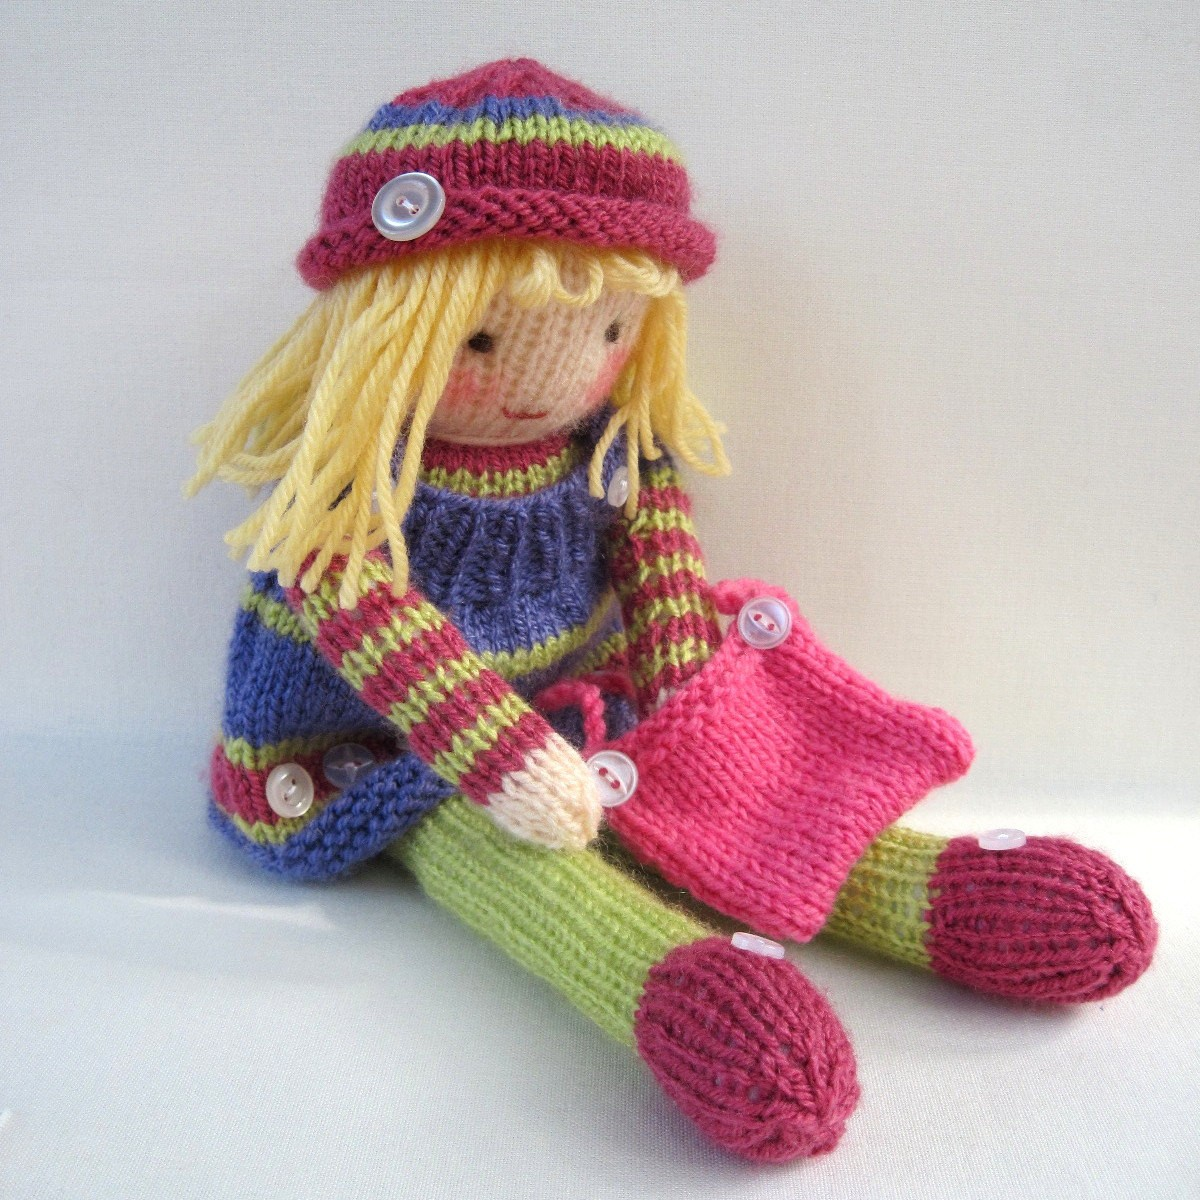 Free Patterns For Knitted Dolls : Knitted Doll Patterns A Knitting Blog